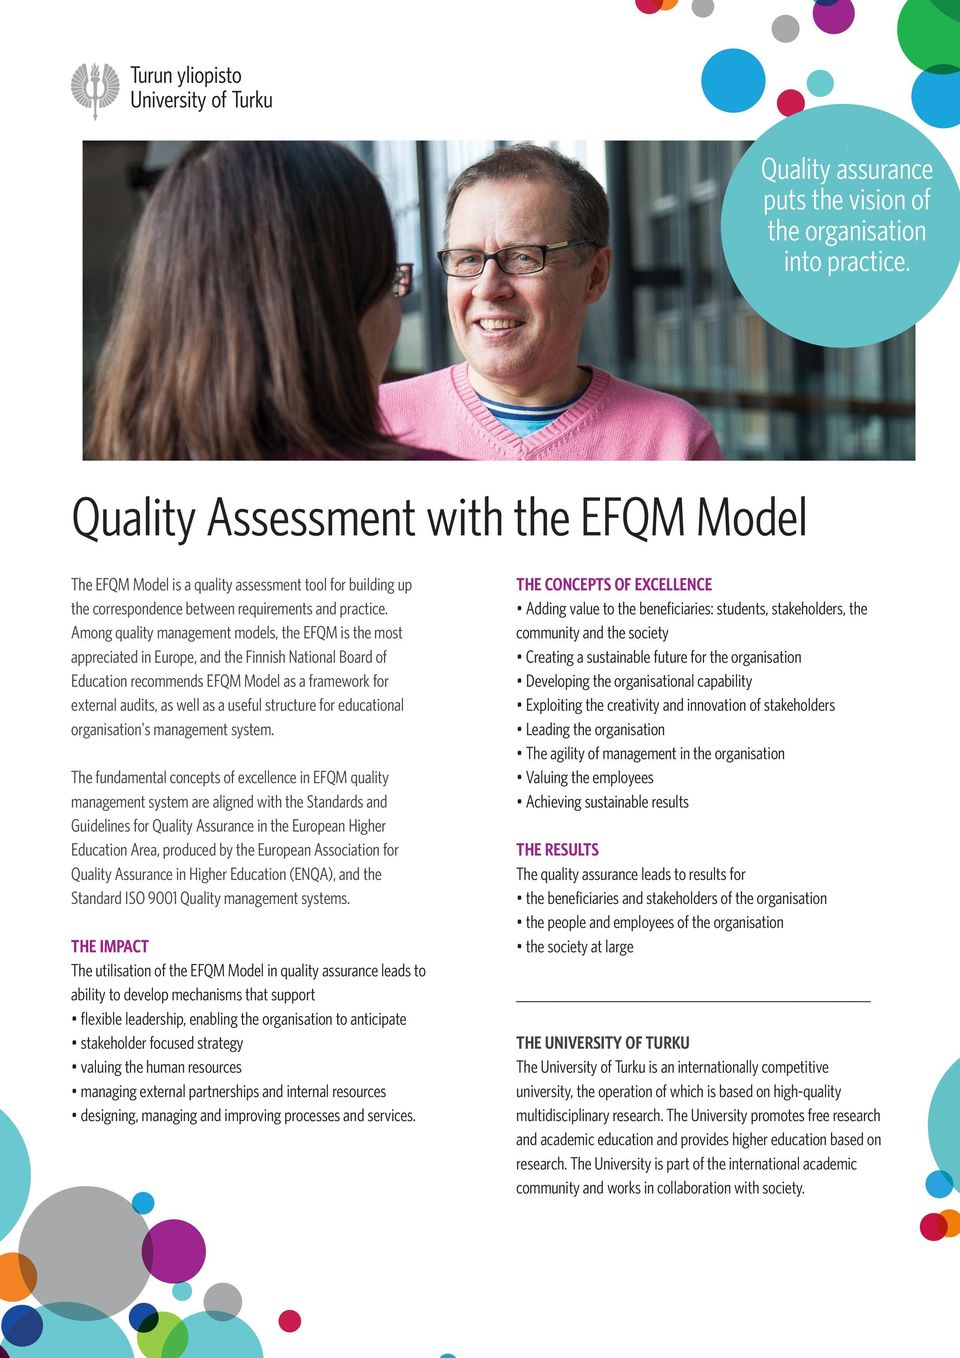 audits, as well as a useful structure for educational organisation's management system The fundamental concepts of excellence in EFQM quality management system are aligned with the Standards and